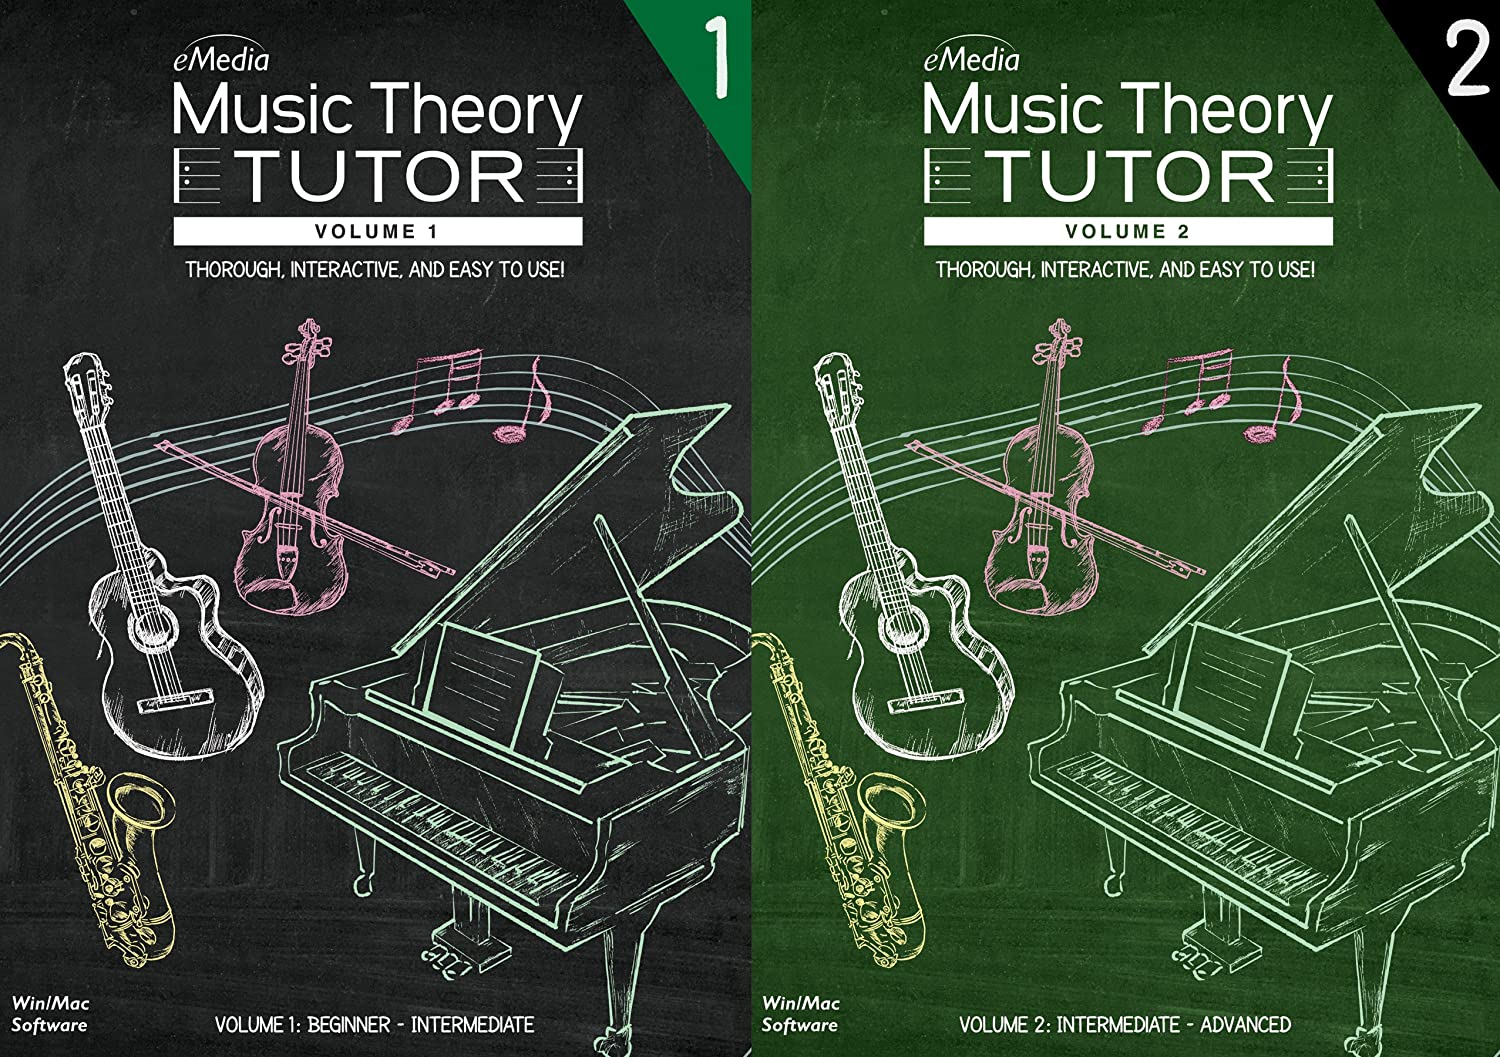 eMedia Music Theory Tutor Complete [Mac Download]